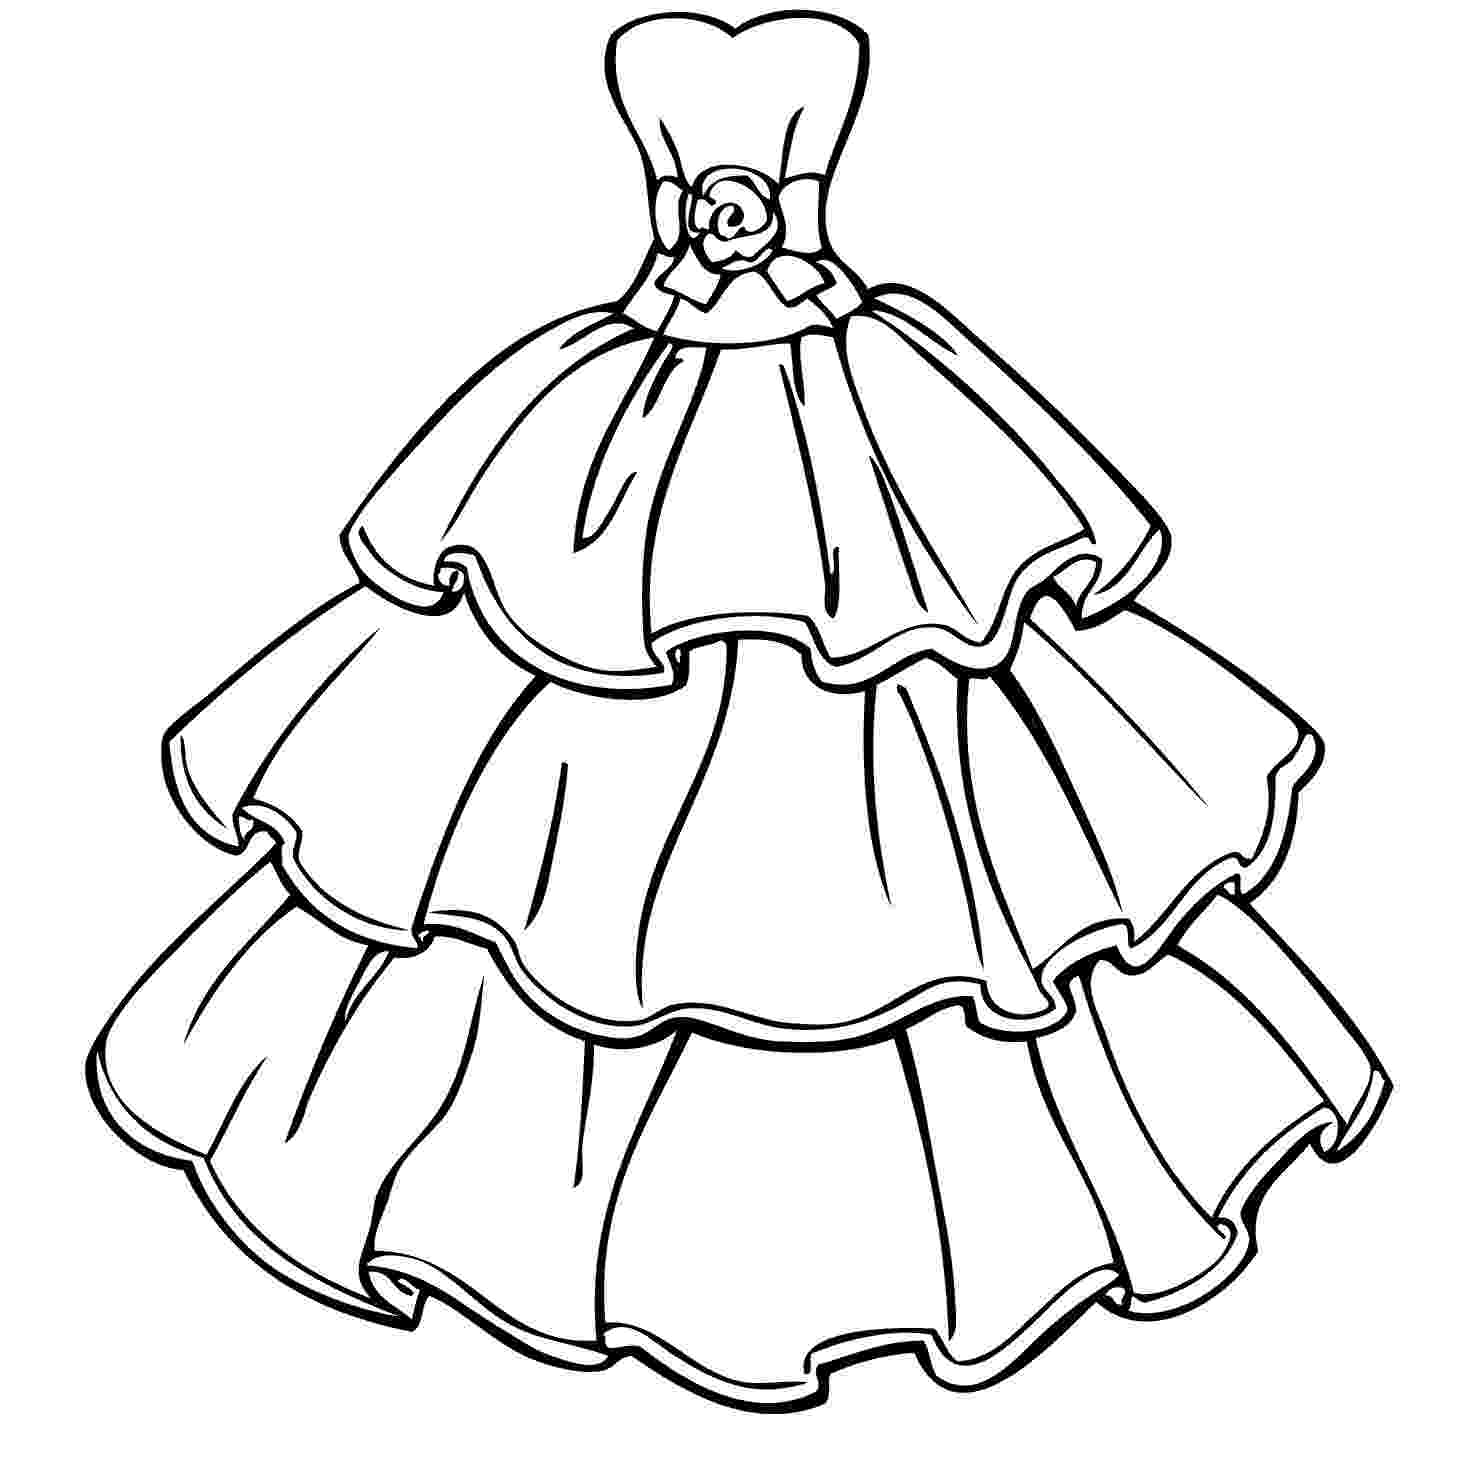 coloring pages of dresses dress coloring pages to download and print for free pages coloring of dresses